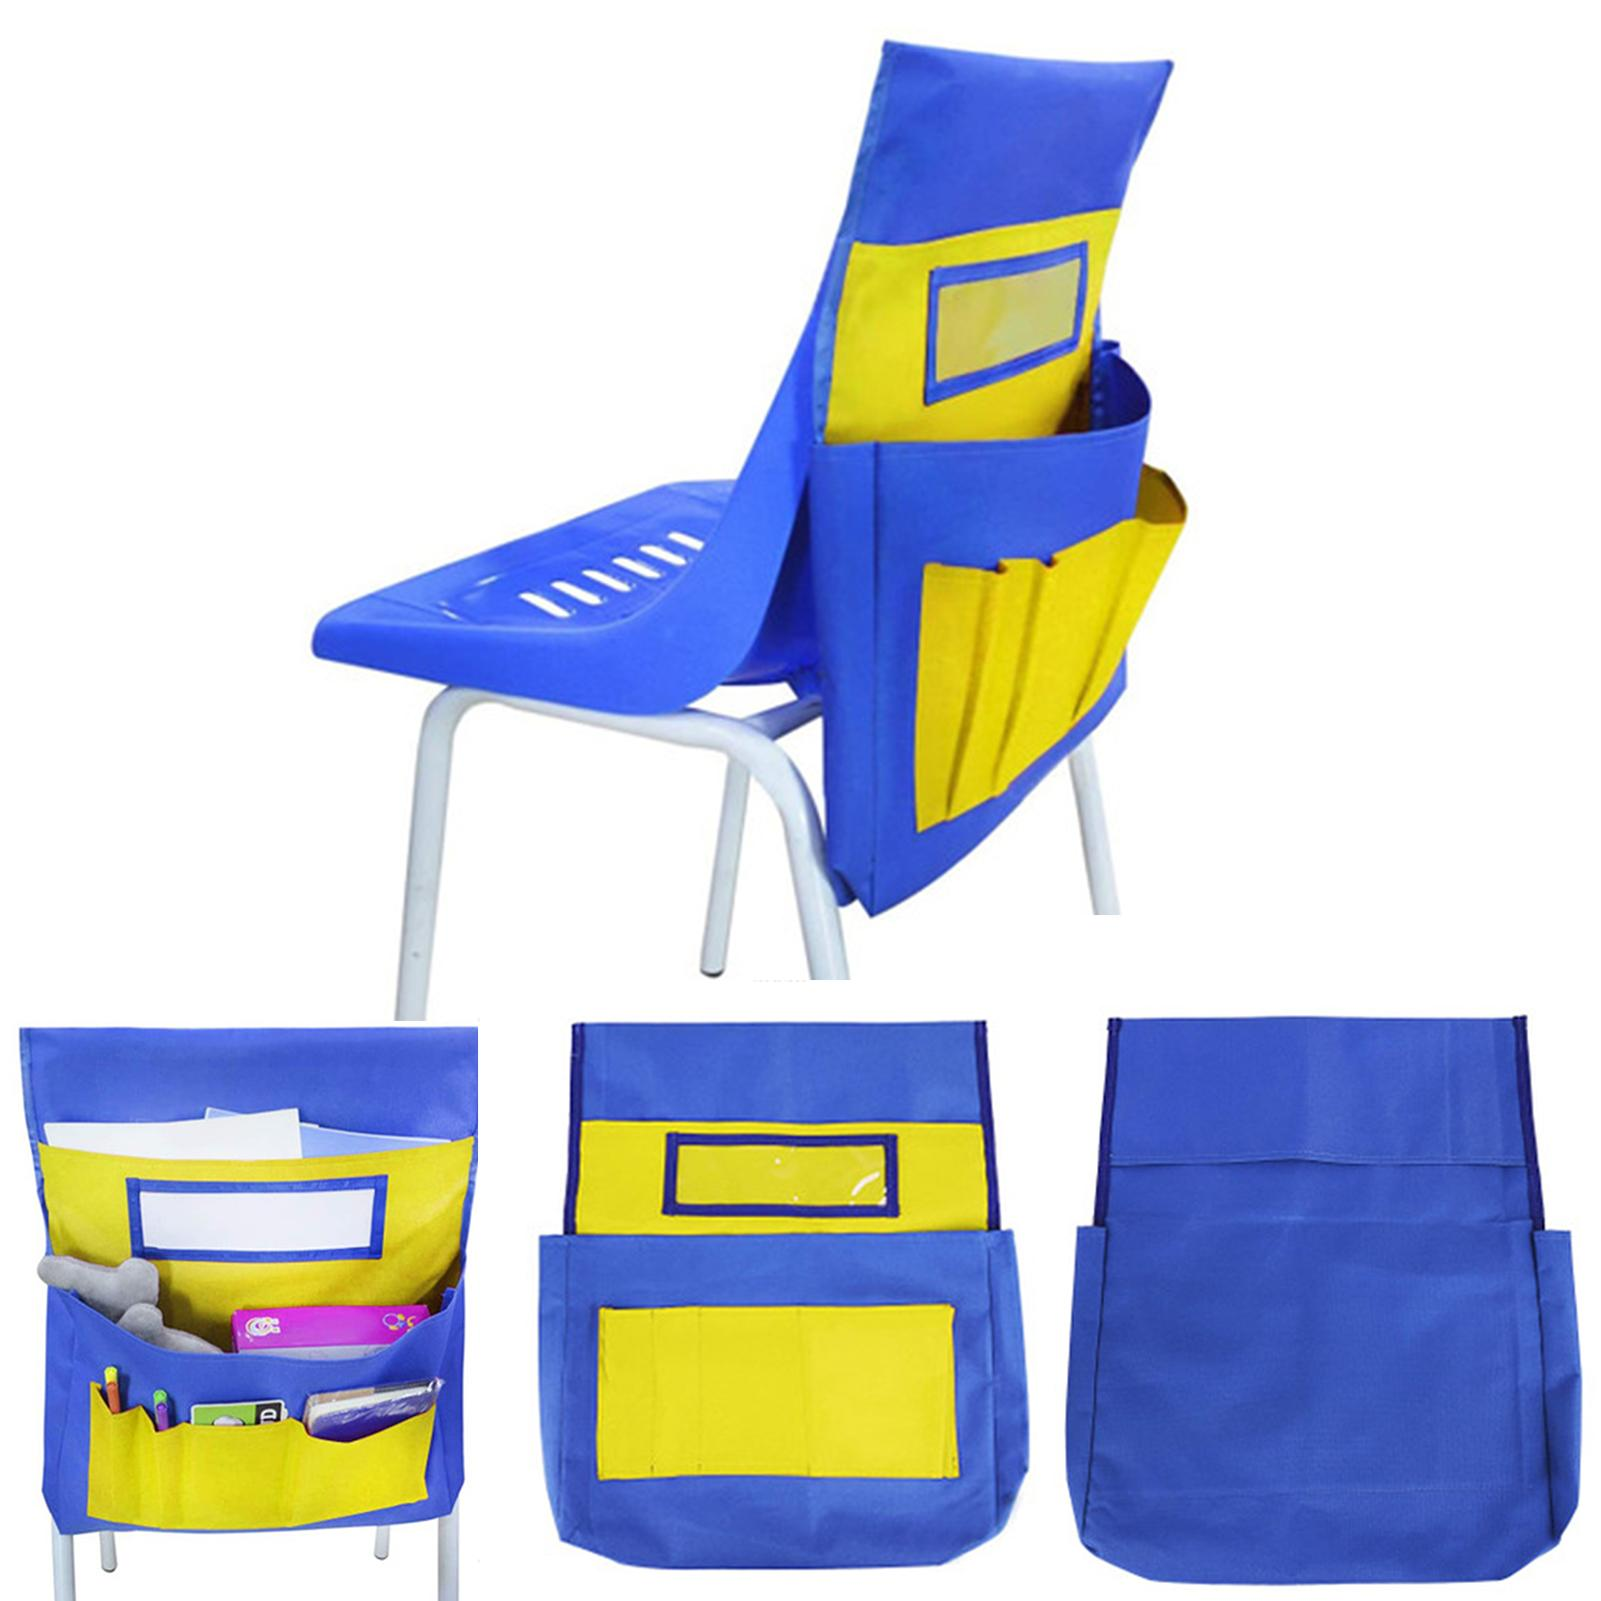 HOT SALES!!!New Arrival School Stationery Organizer Pocket Sundries Collection Chair Back Storage Bag